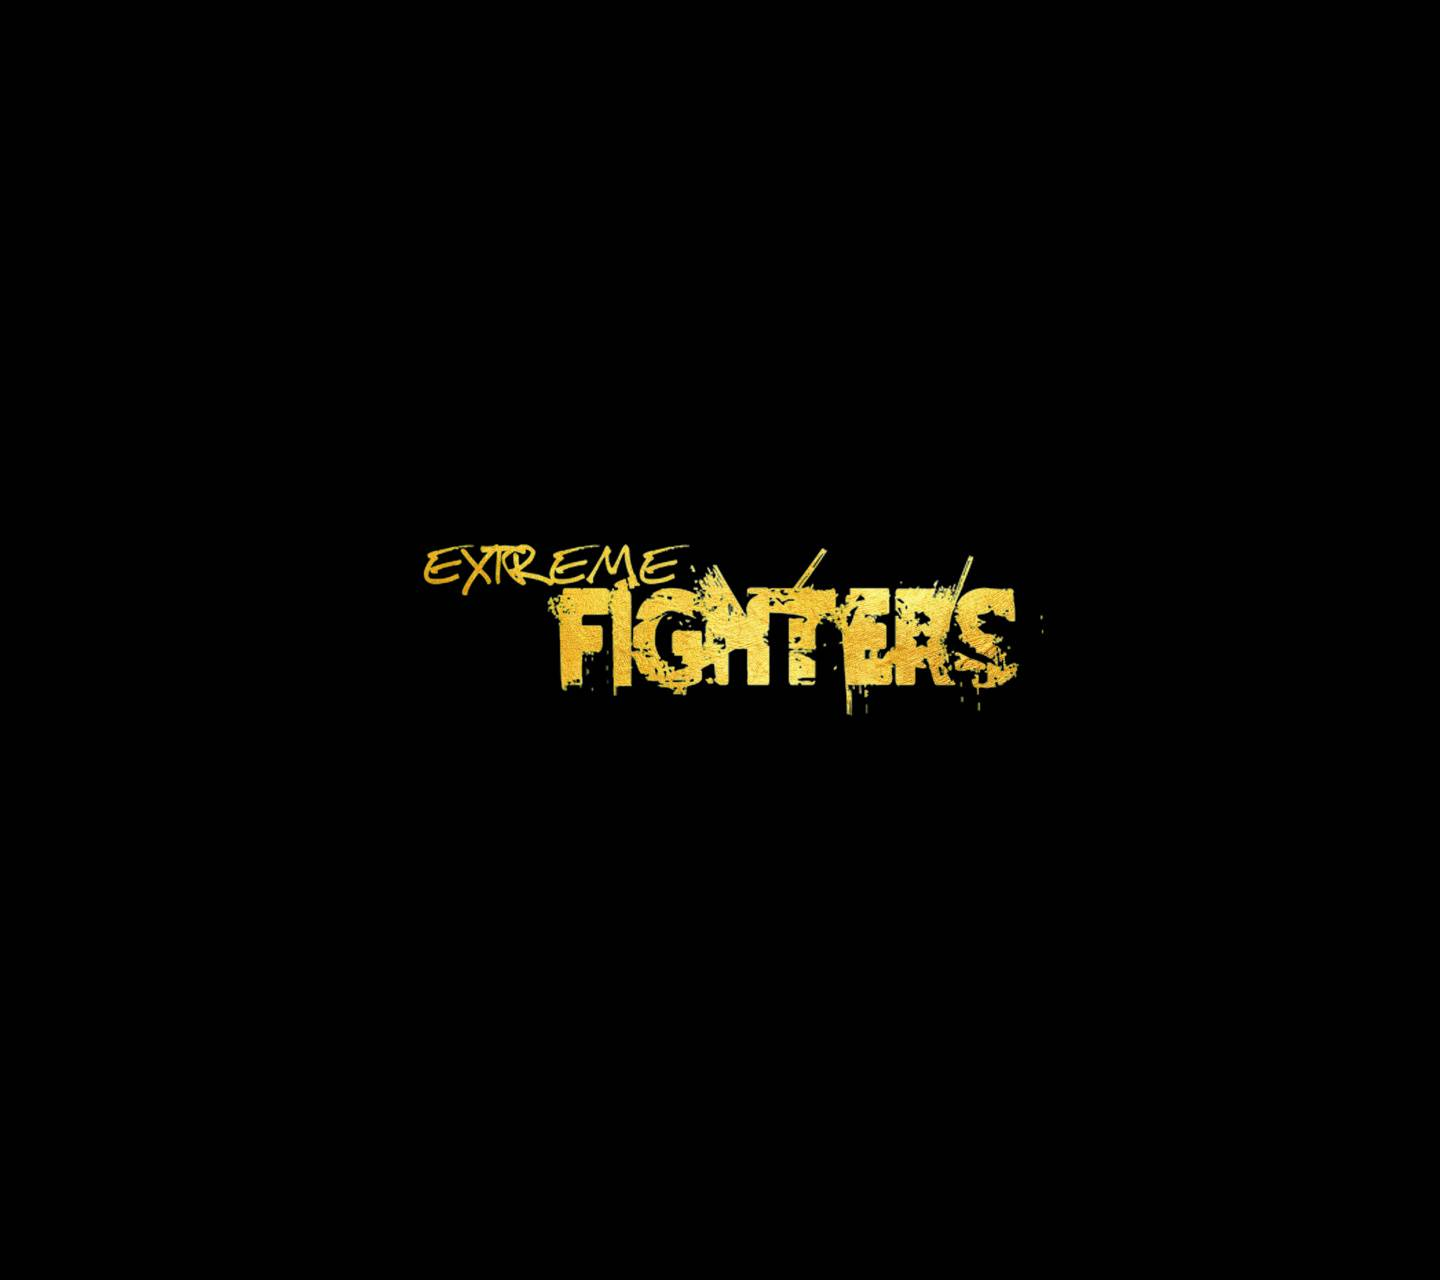 Gold Fighters